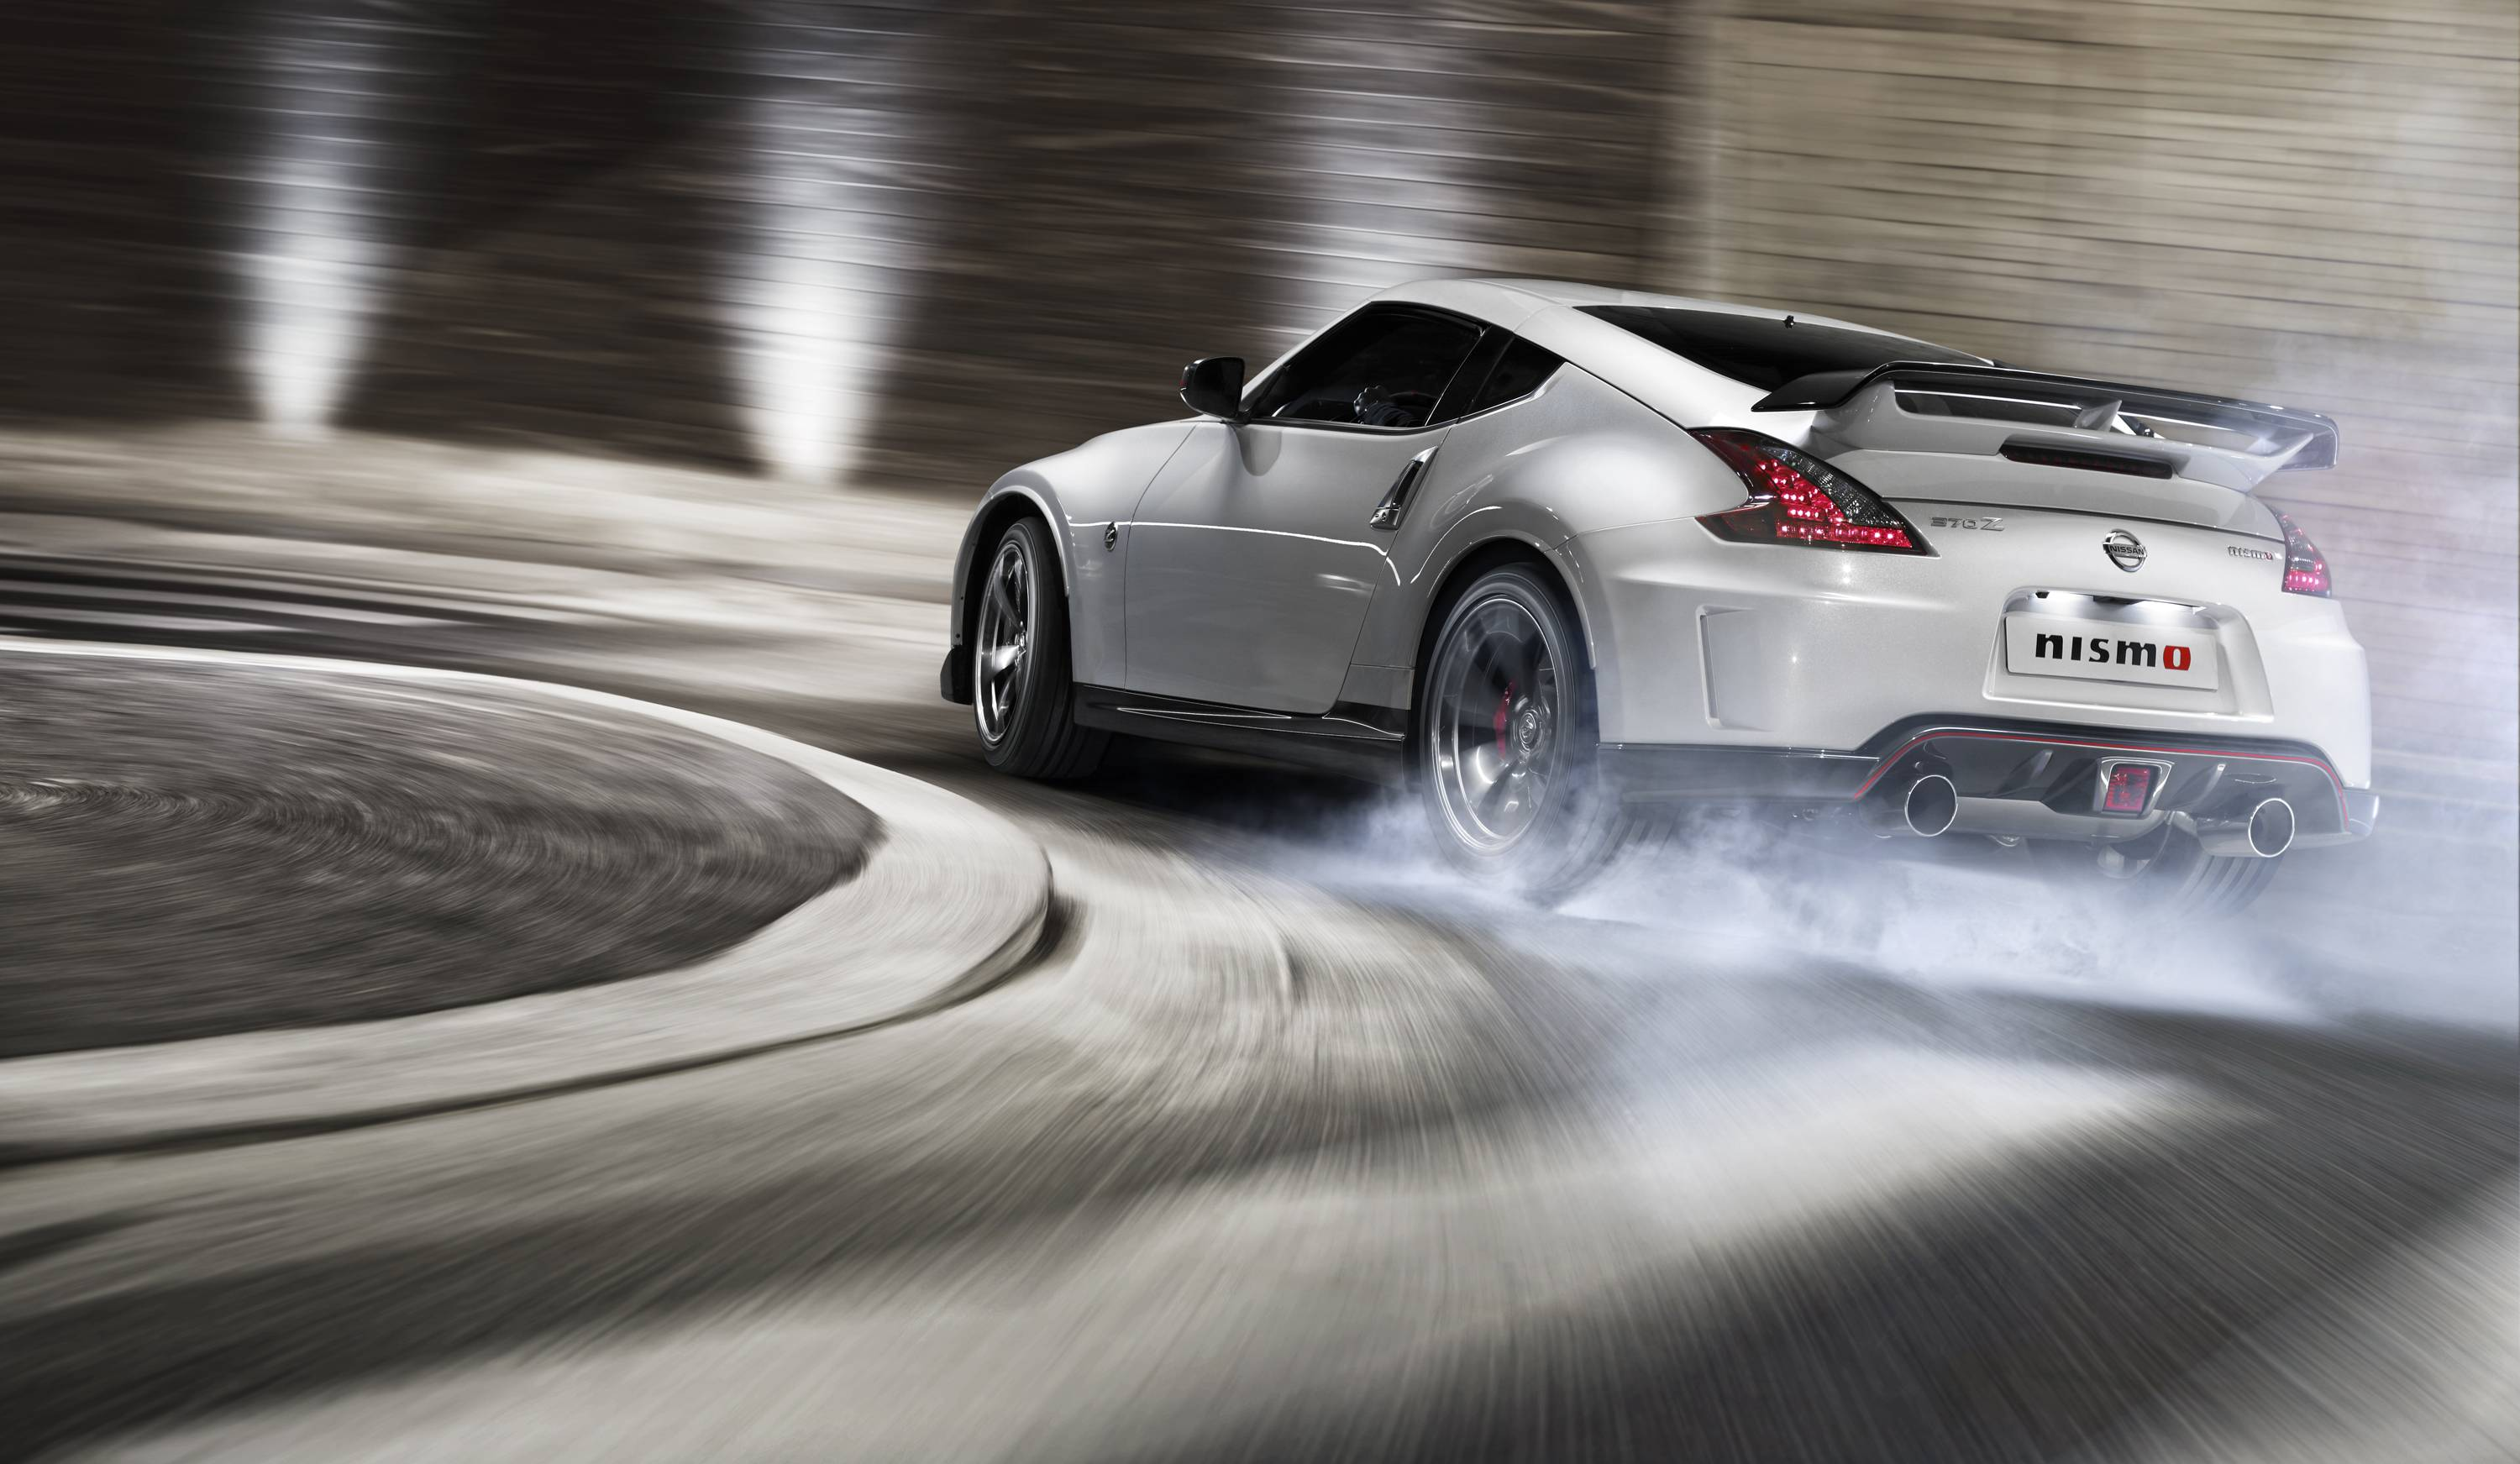 Image For > Nissan 370z Nismo Wallpapers